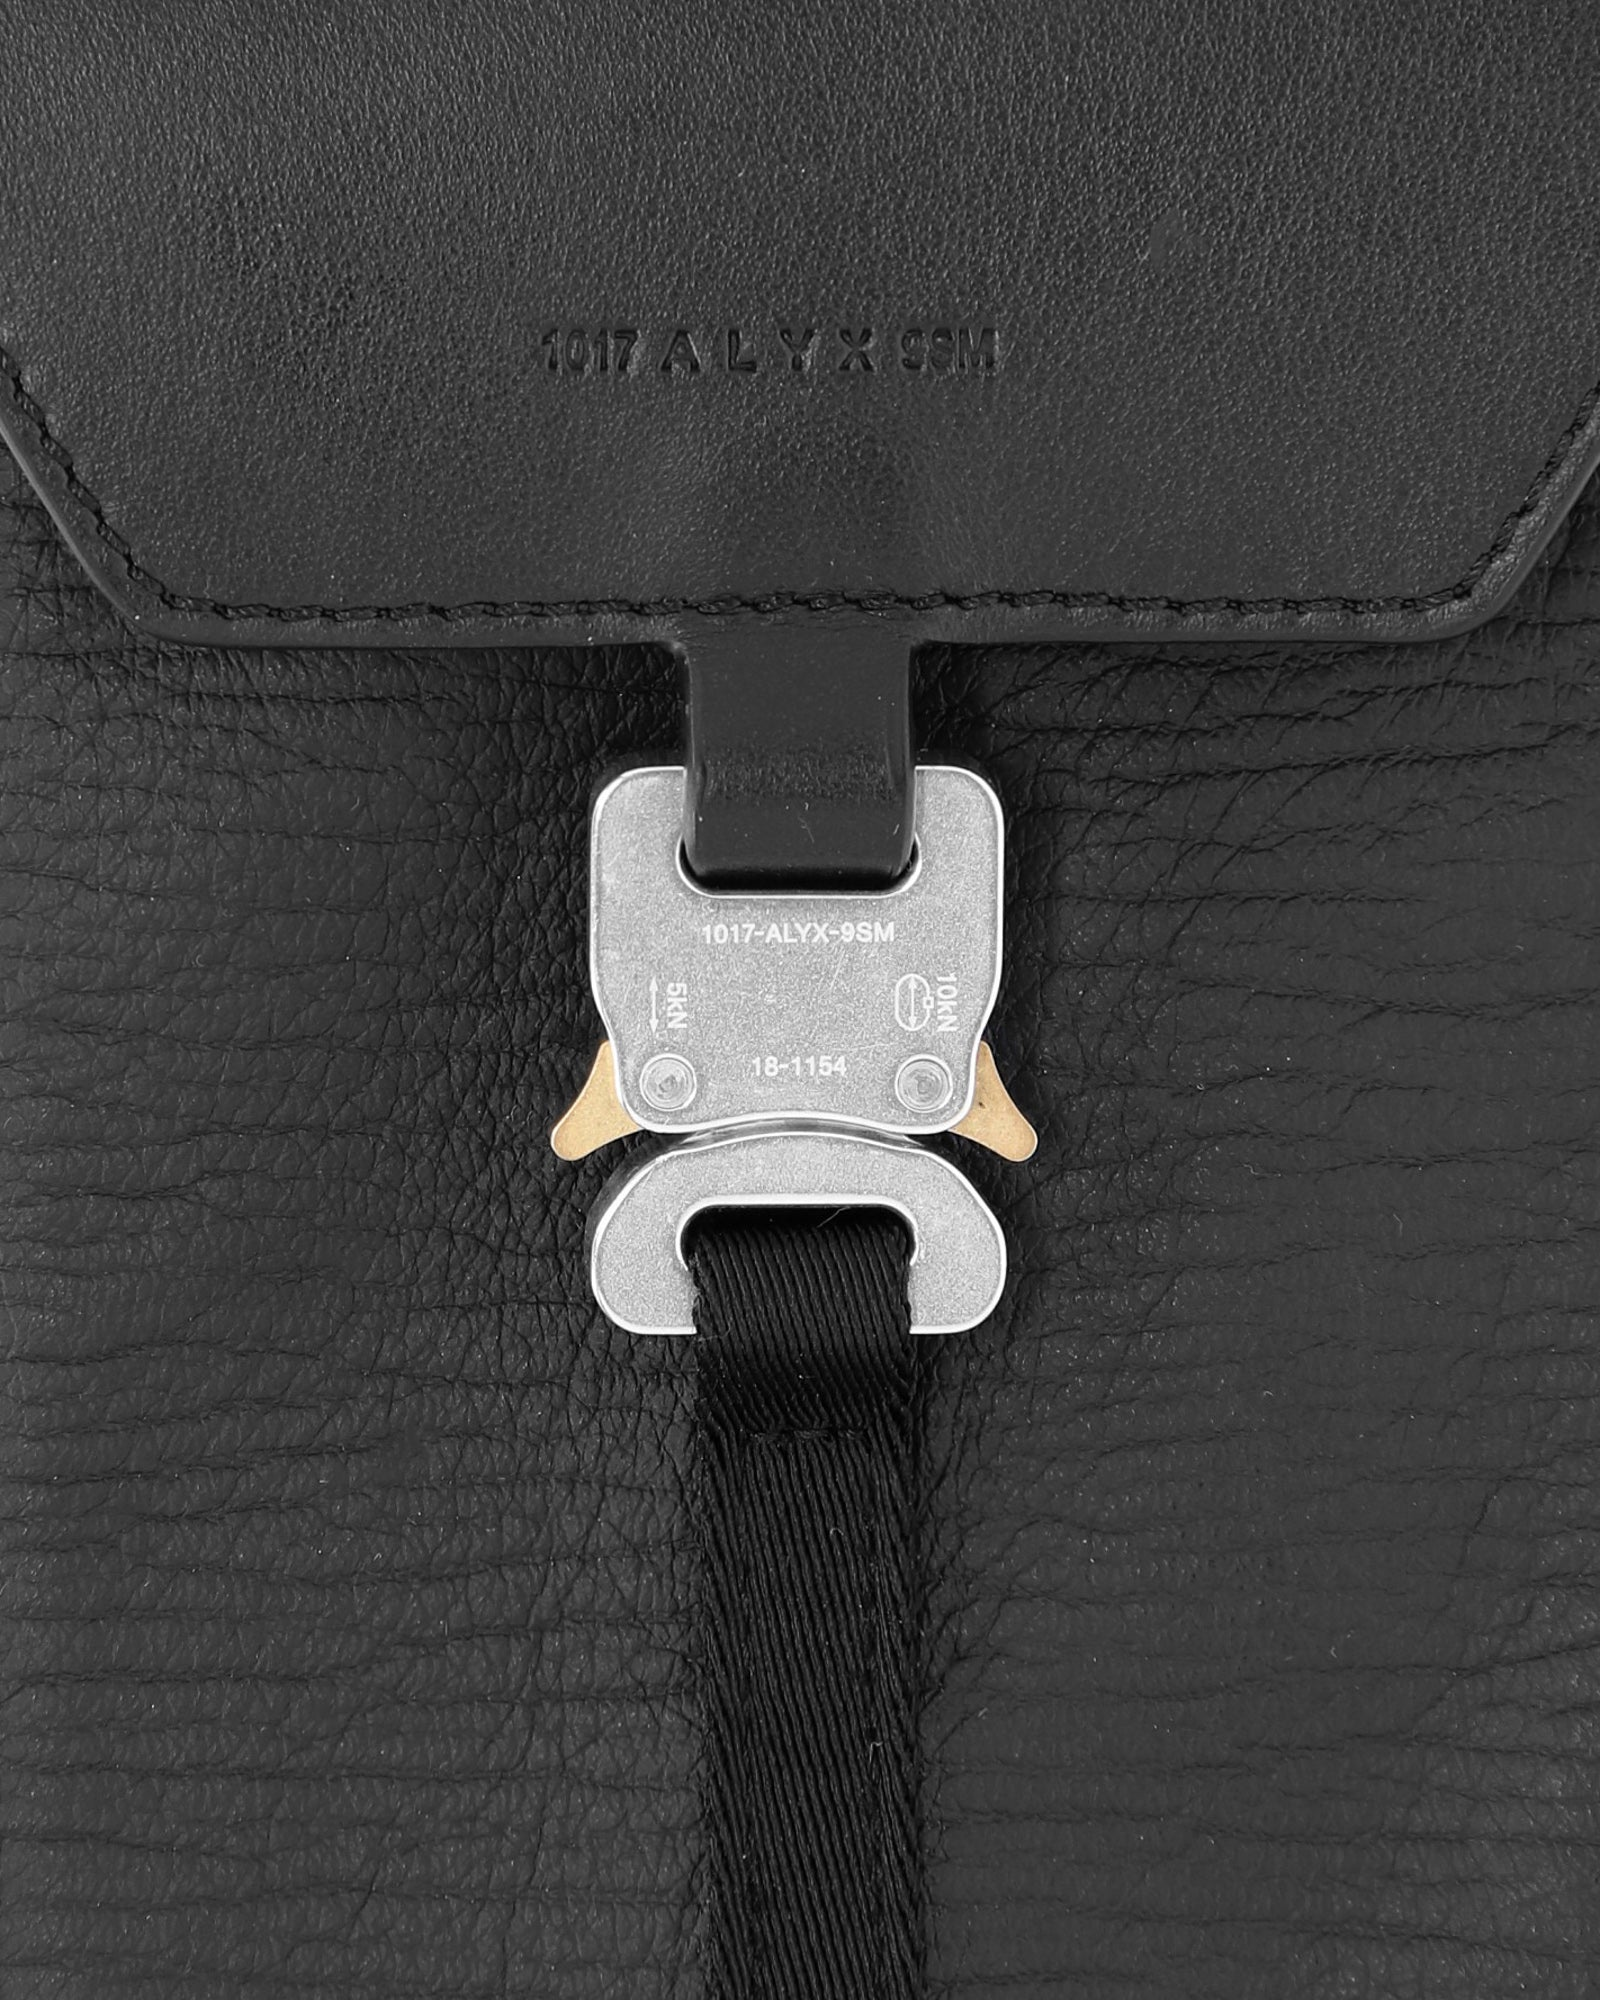 1017 ALYX 9SM | PHONE BUCKLE BAG | Bag | Accessories, Bag Online, Bags, Black, F19, Man, Woman